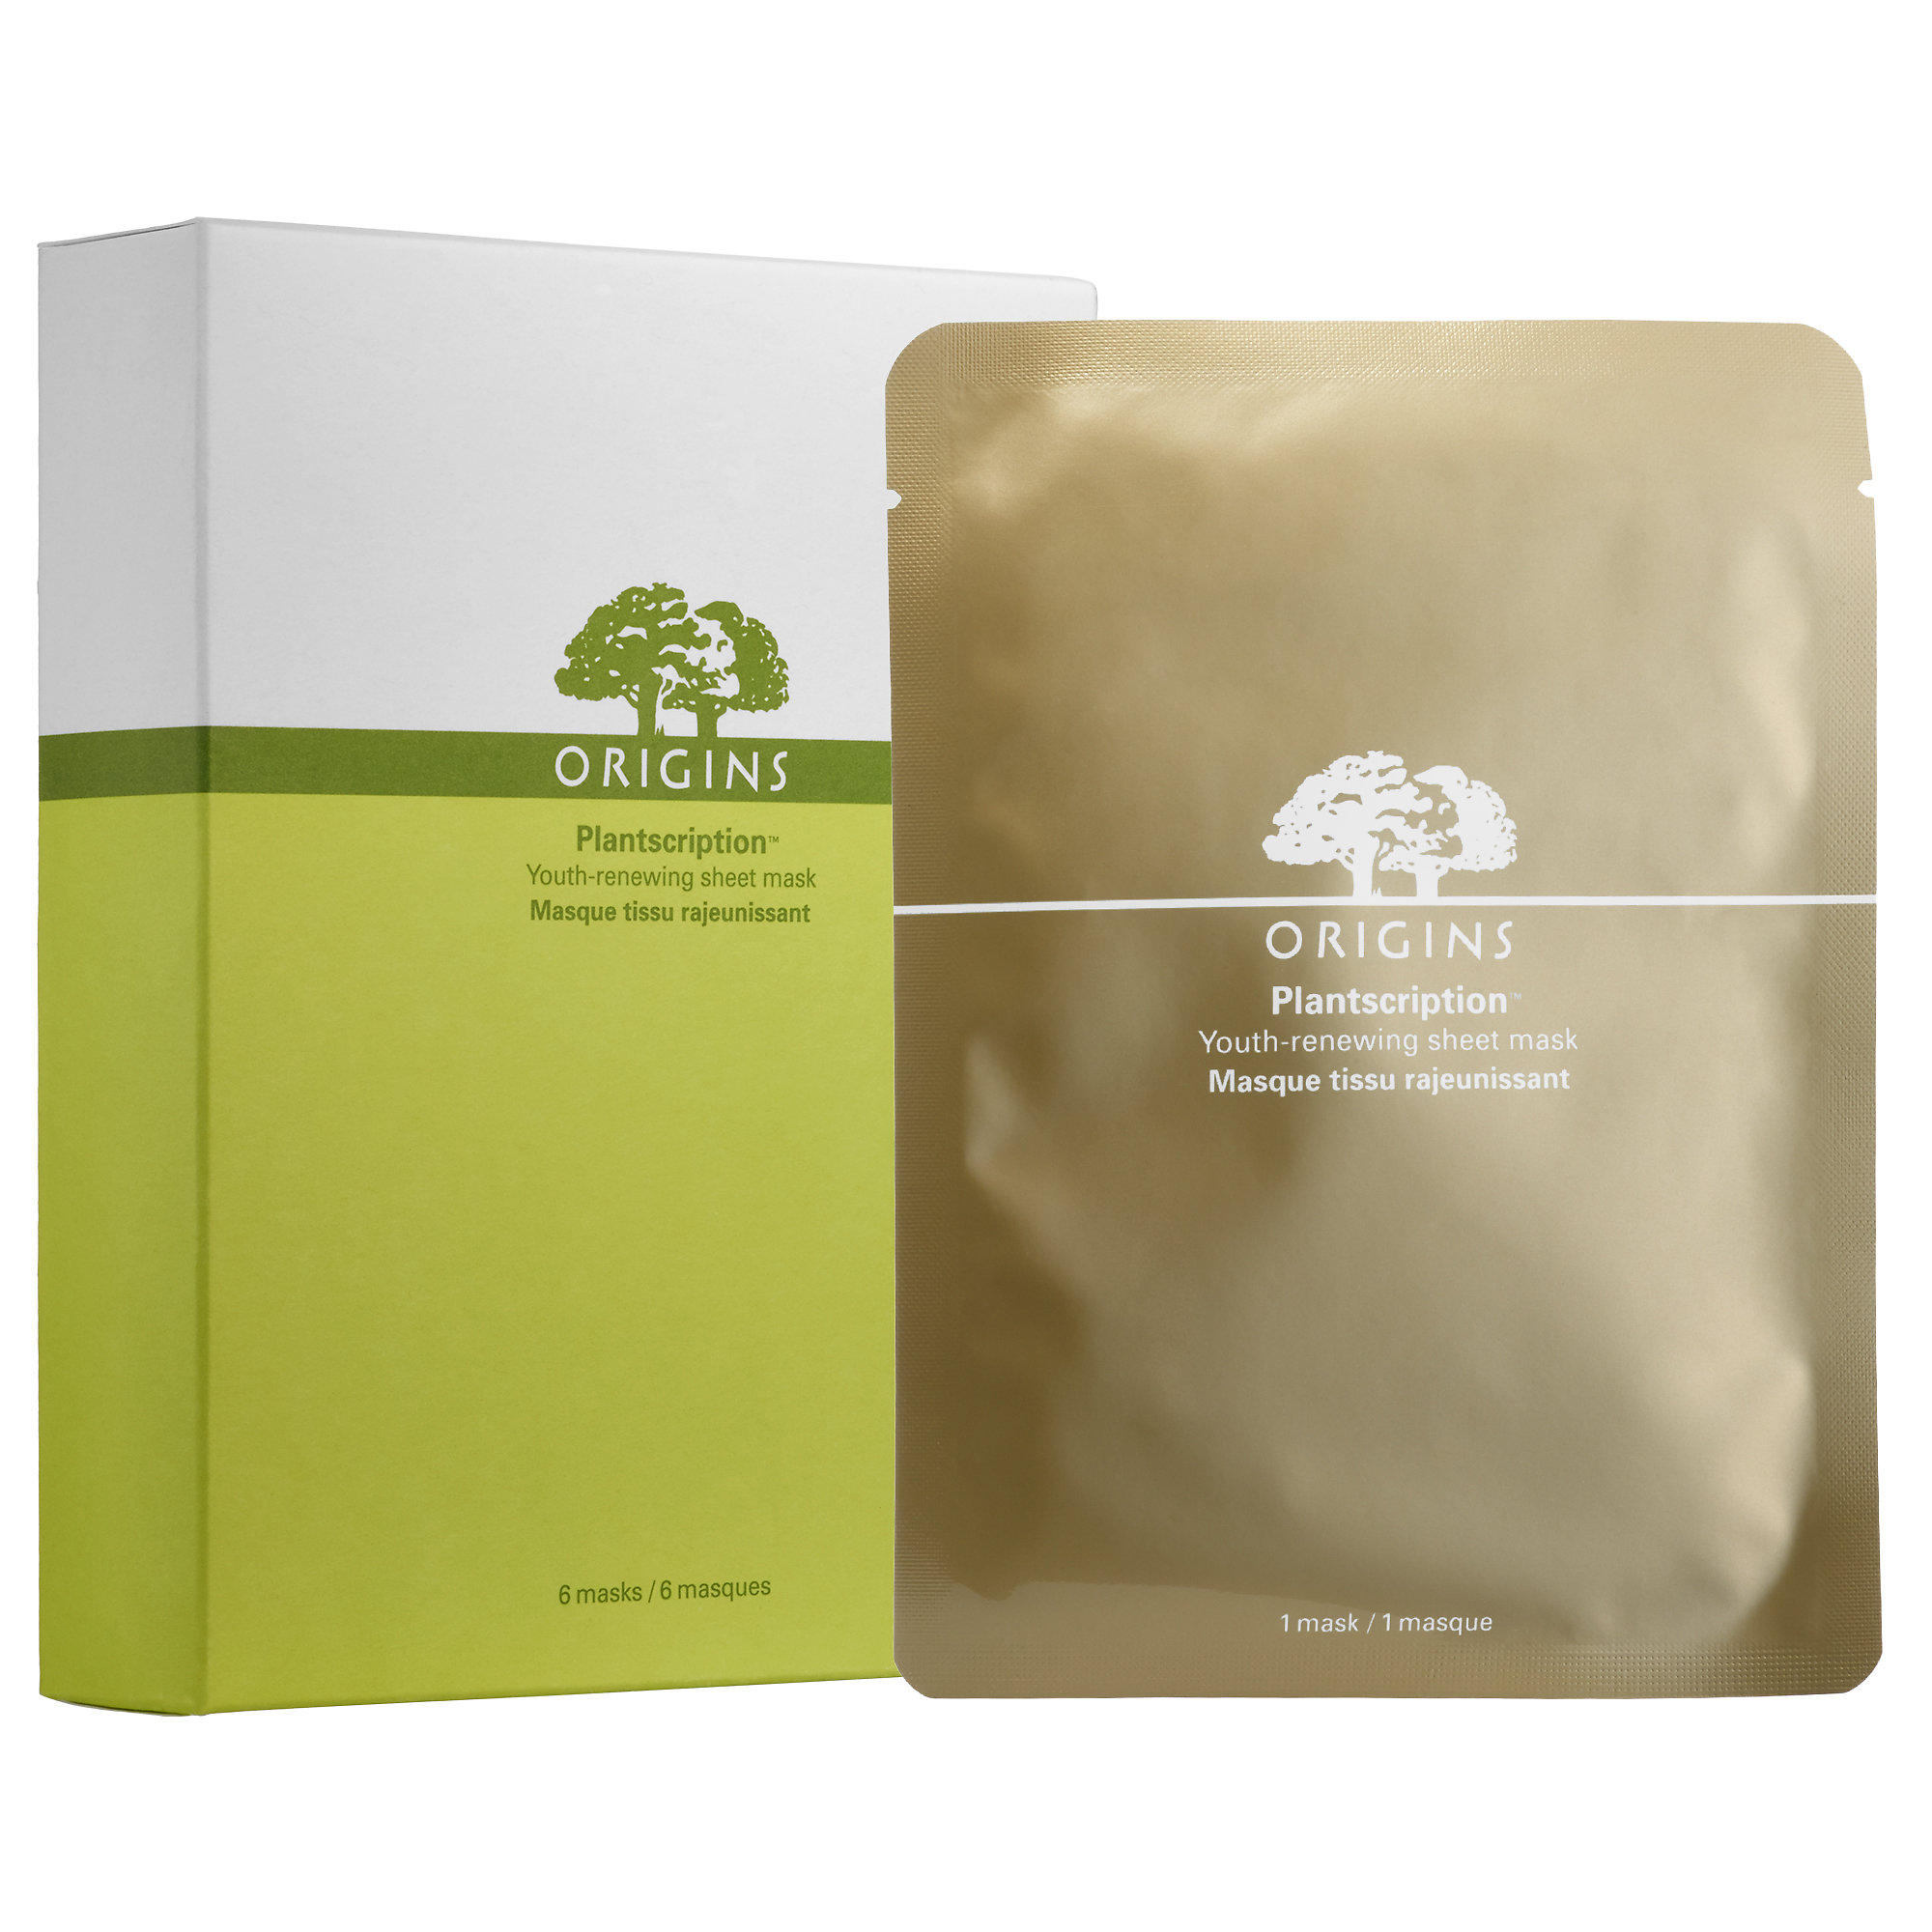 New Release Origins launched New PLANTSCRIPTION Youth-Renewing Sheet Mask